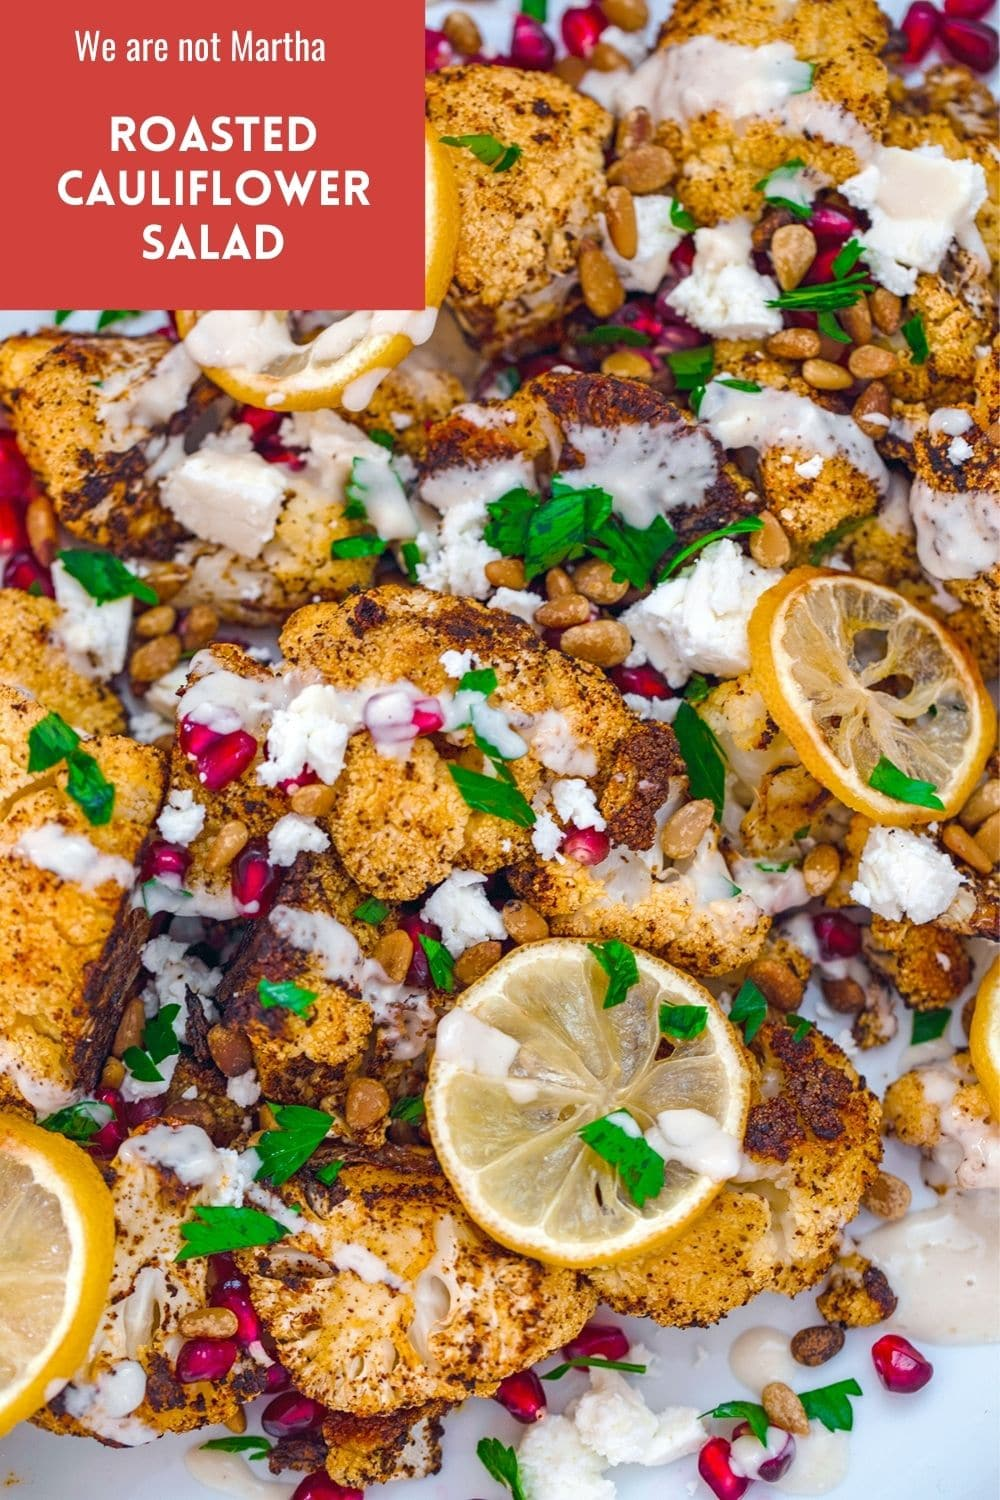 Roasted Cauliflower Salad with Lemon, Pomegranate, and Feta